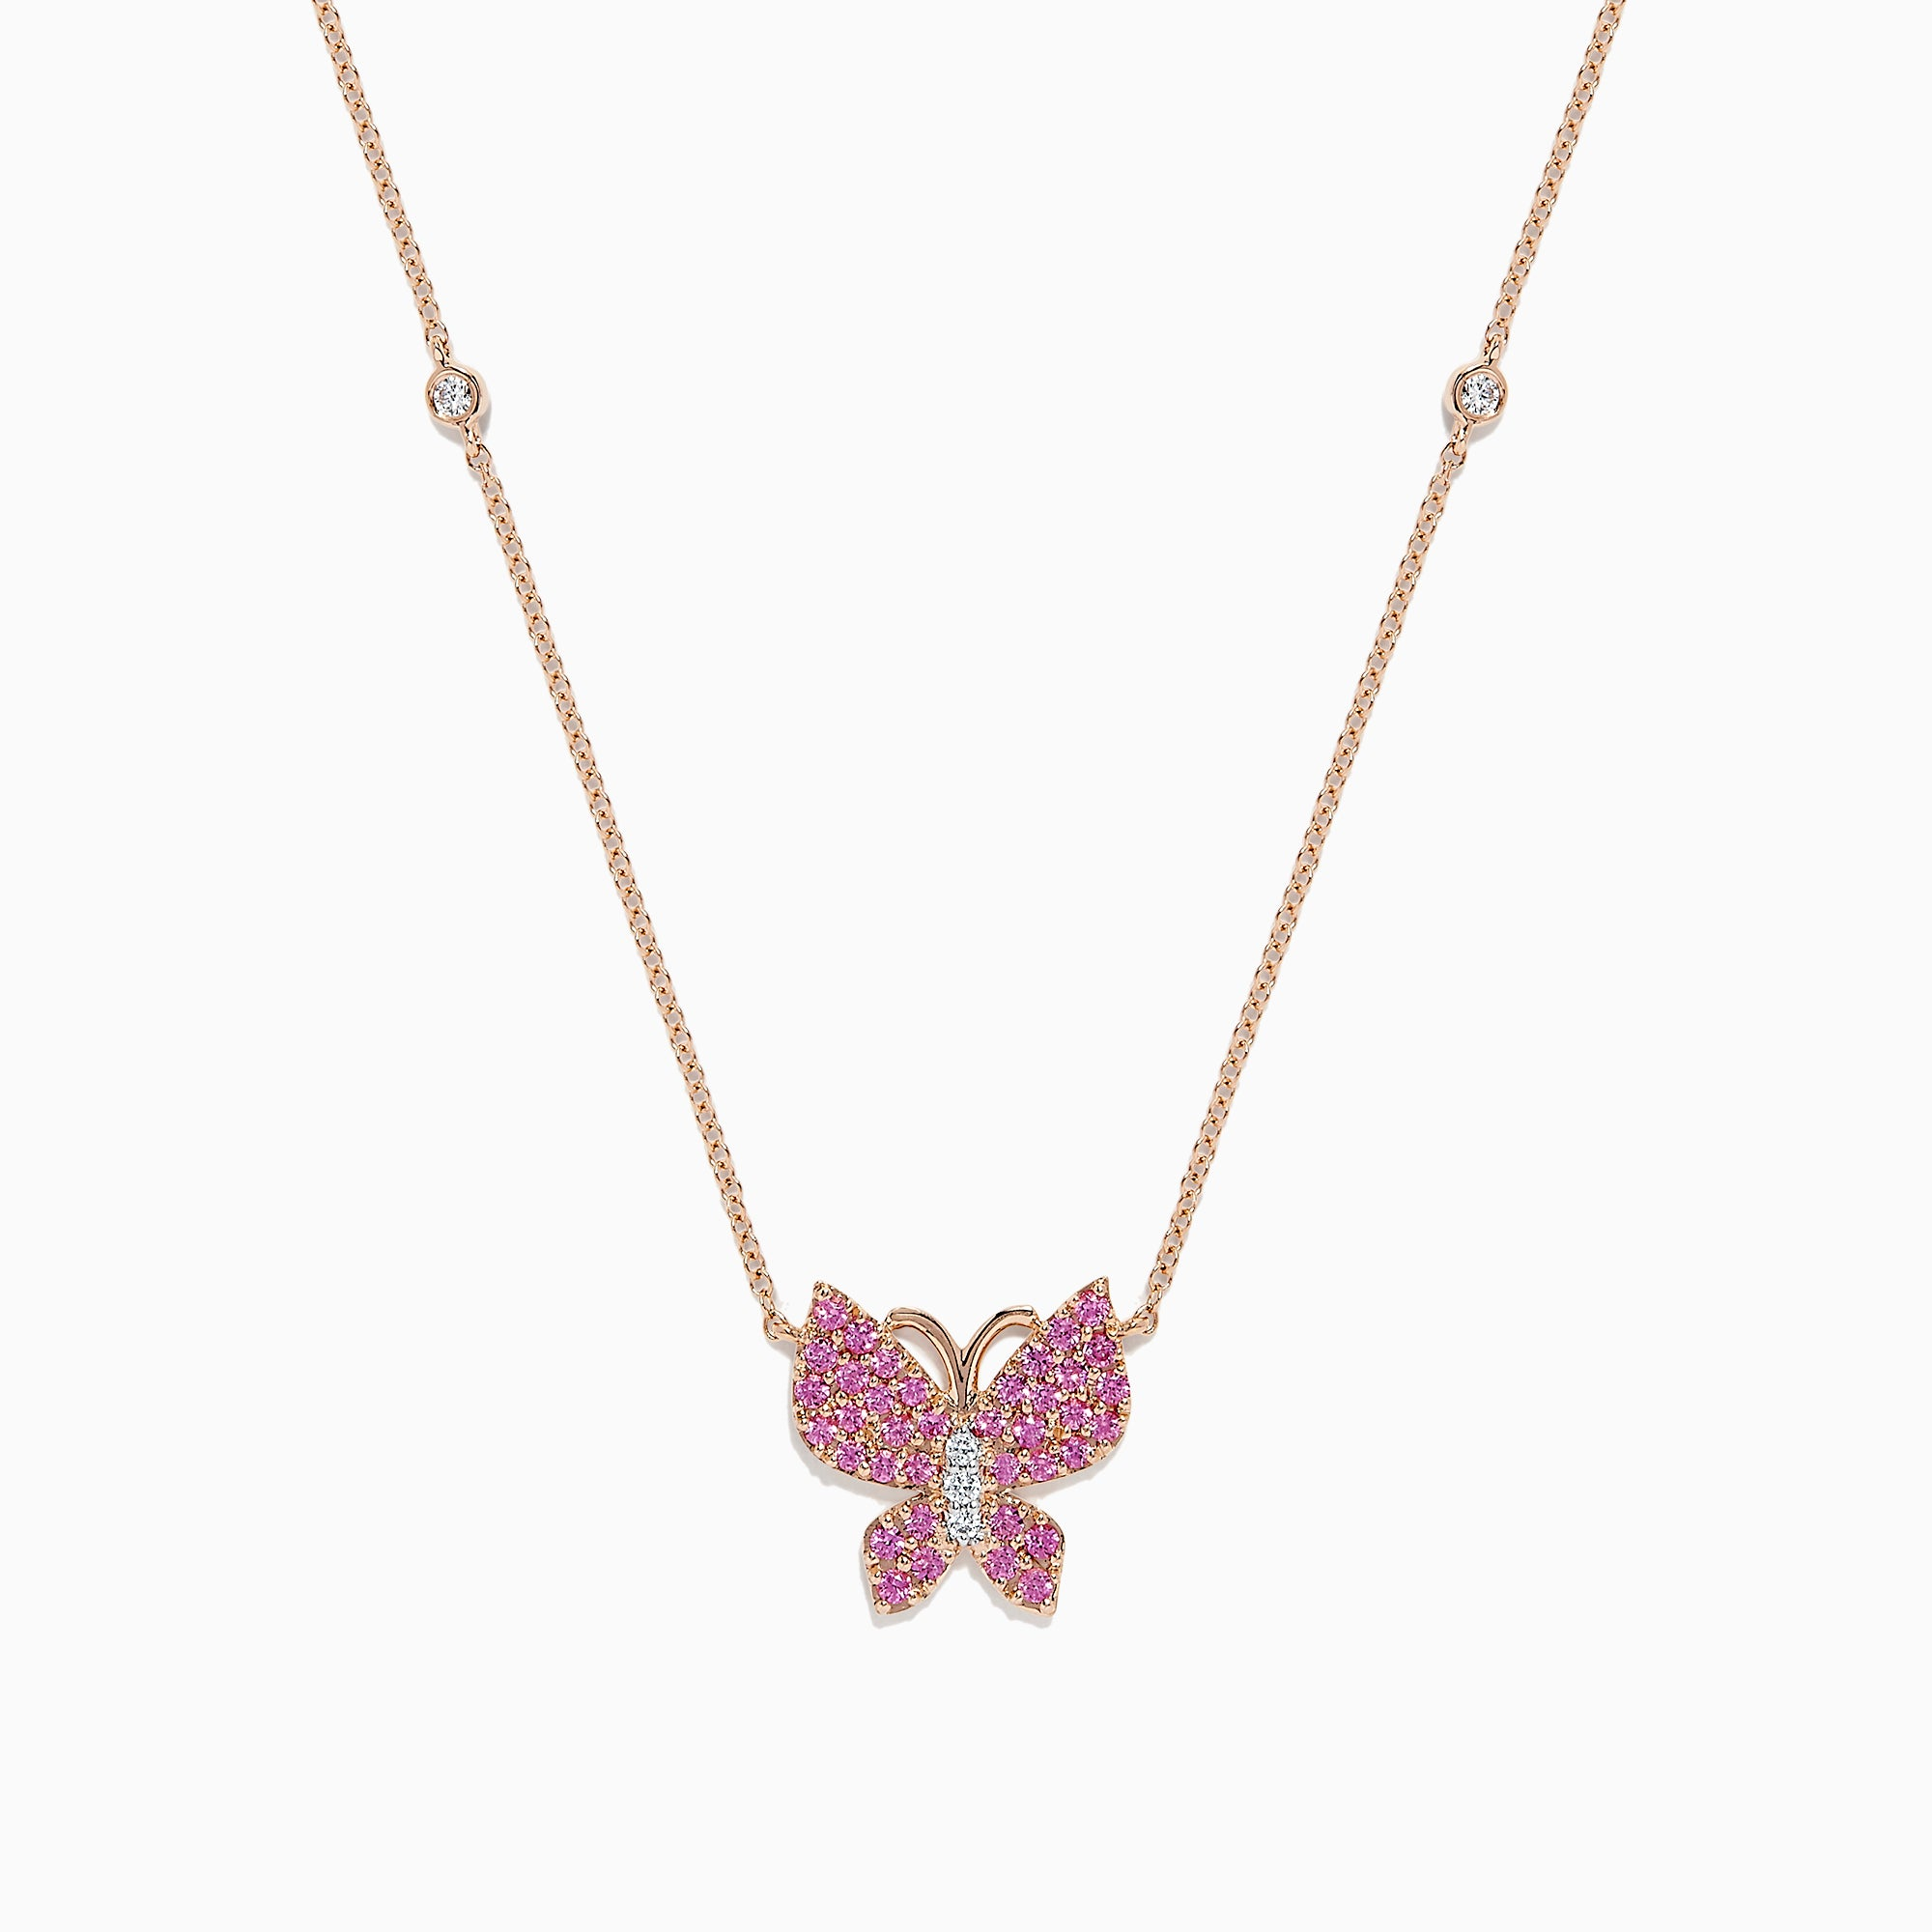 Effy Nature 14K Gold Pink Sapphire & Diamond Butterfly Necklace, 0.50 TCW